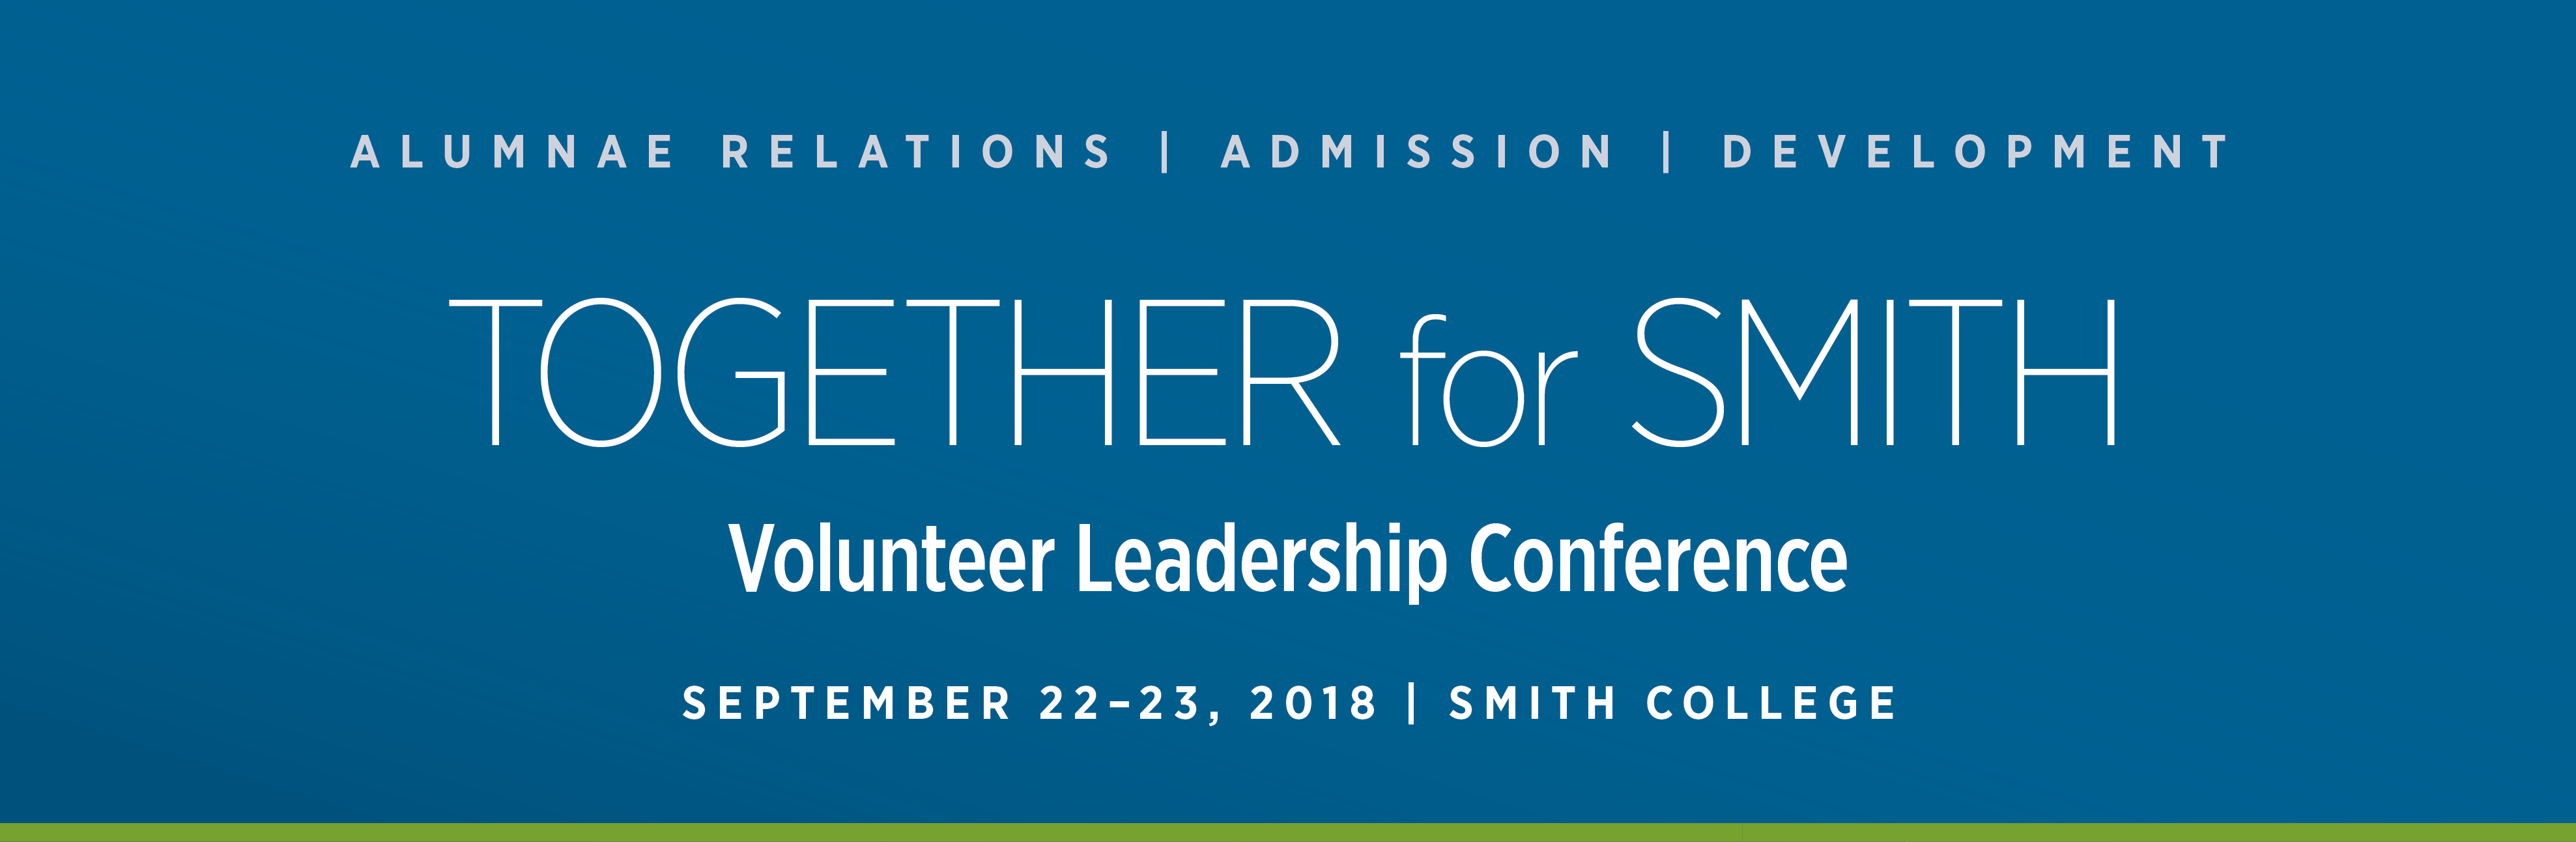 Volunteer Leadership Conference 2018